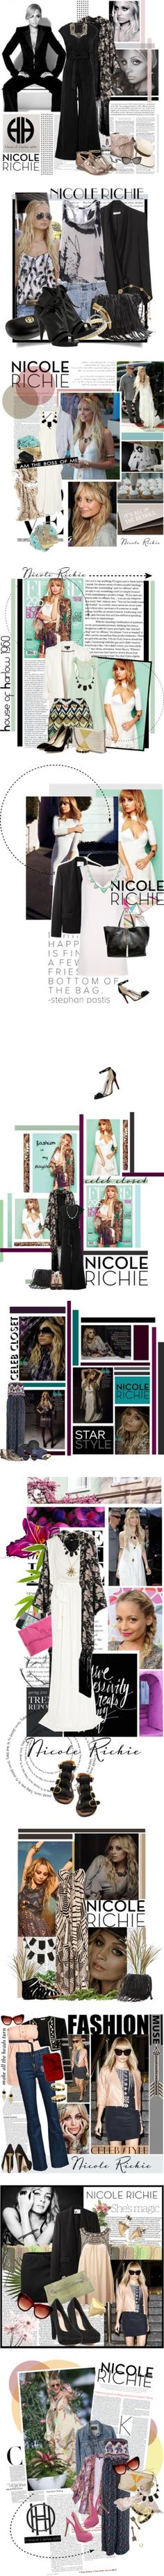 """""""Celebrity Closet: Nicole Richie"""" by polyvore-editorial ❤ liked on Polyvore"""